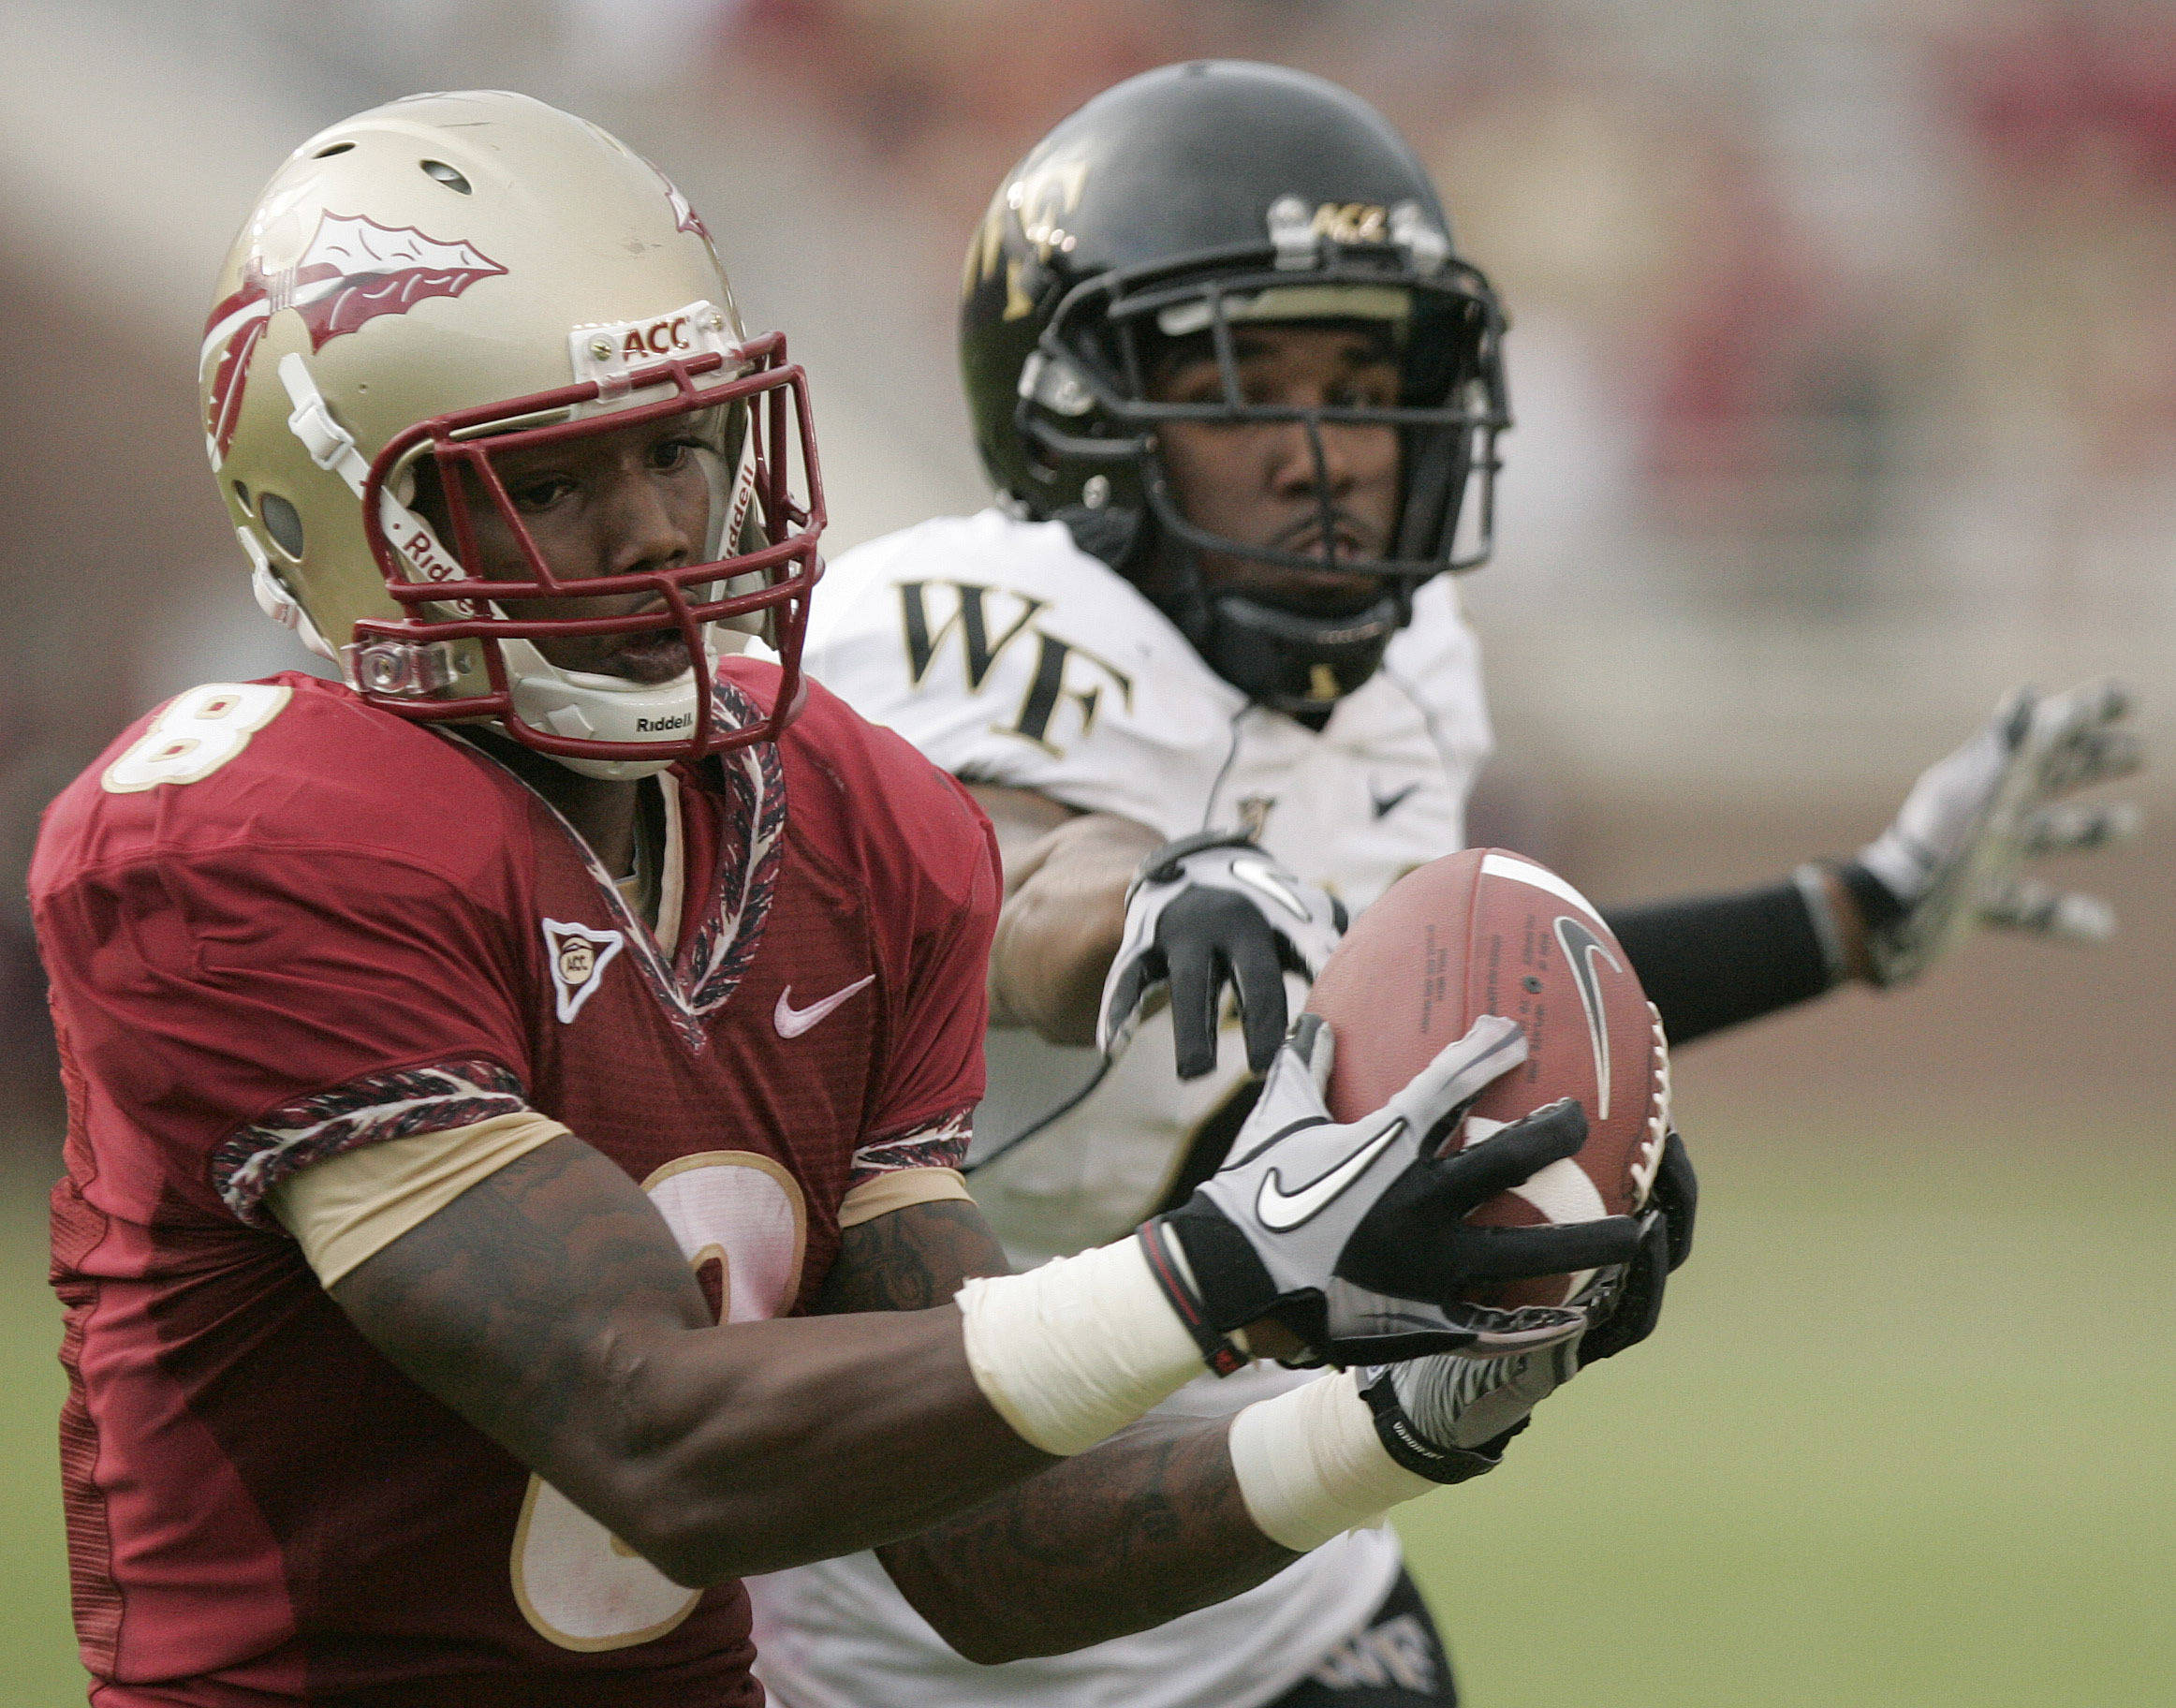 Florida State's Taiwan Easterling, left, pulls in this pass against Wake Forest's Alex Frye in the third quarter for a big gain in an NCAA college football game on Saturday, Sept. 25, 2010, in Tallahassee, Fla. (AP Photo/Steve Cannon)